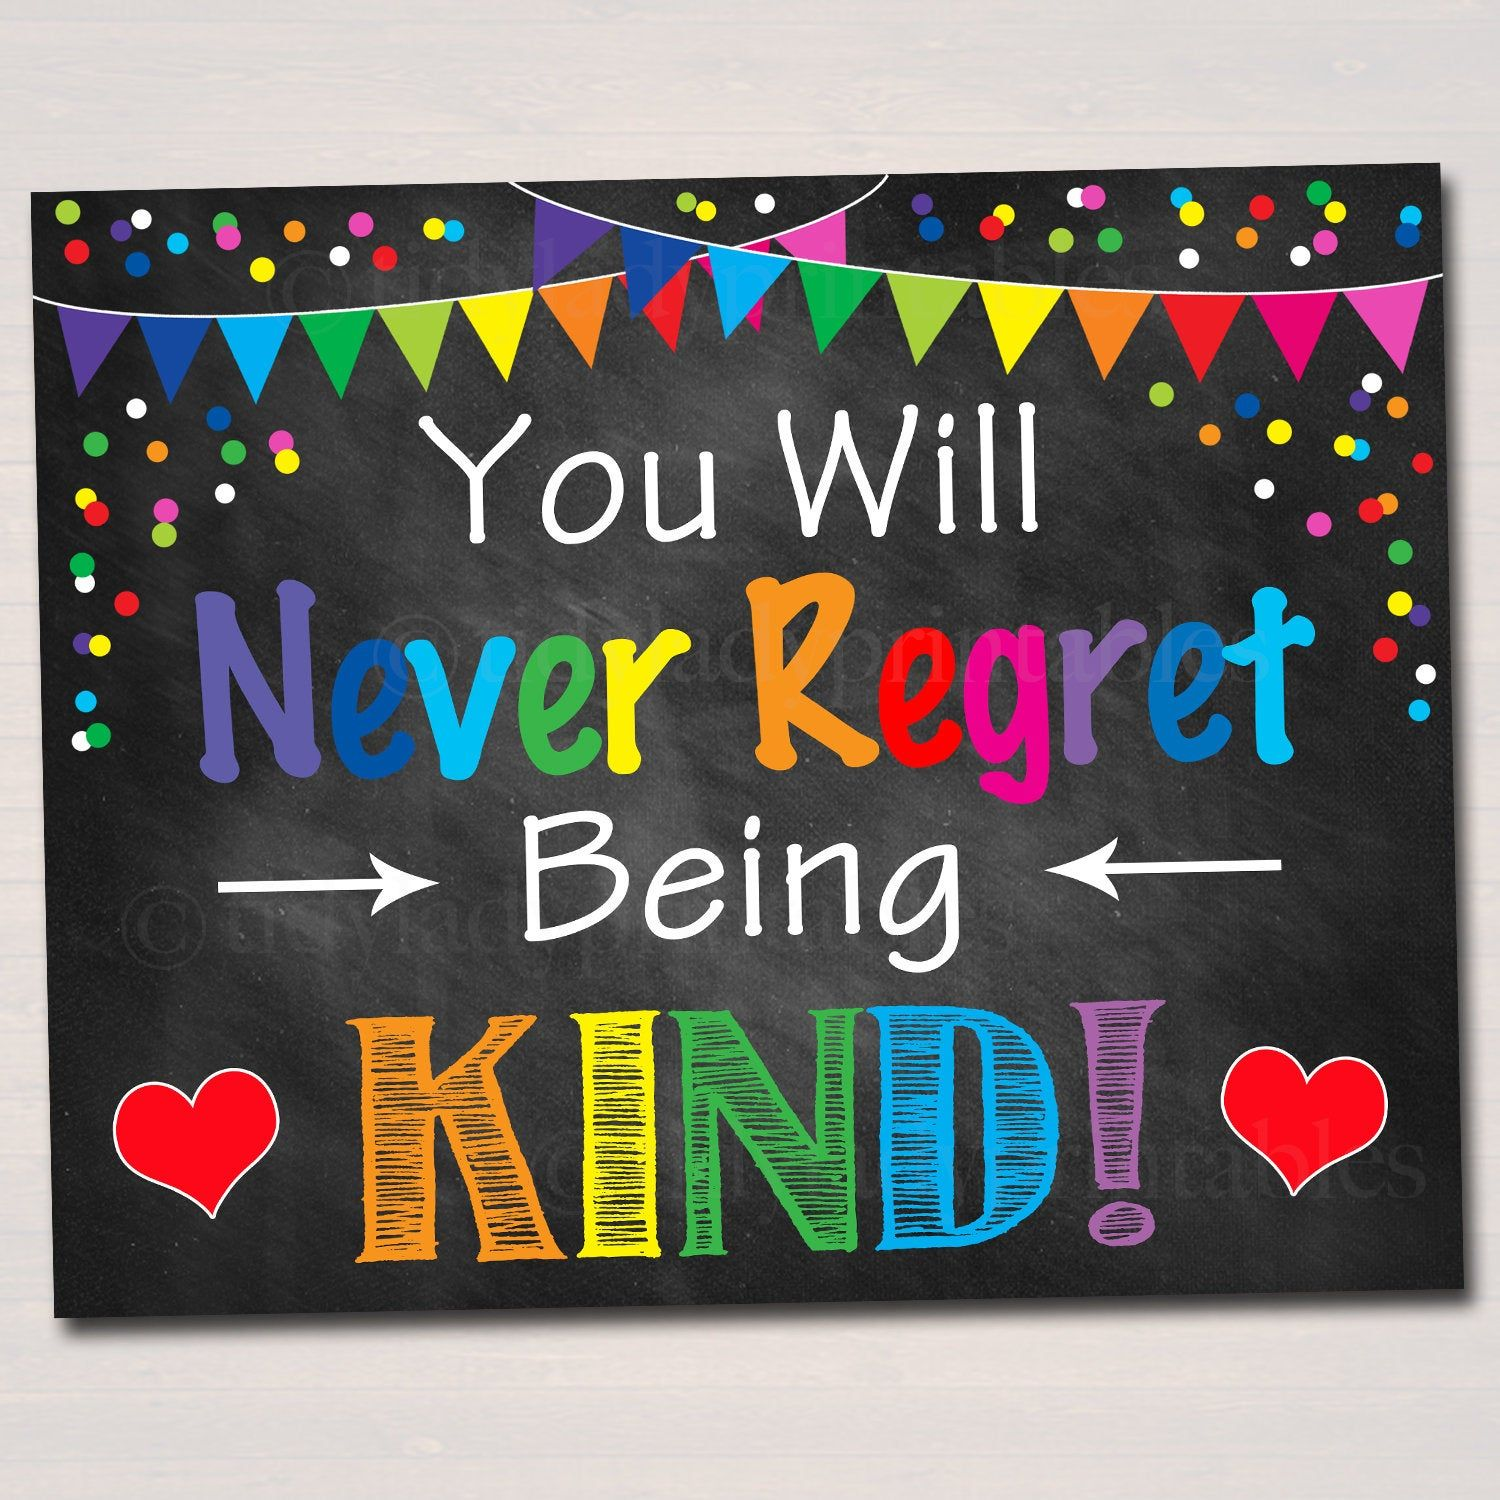 Classroom Kindness Poster, Never Regret Being Kind, Throw Kindness Around Like Confetti, School Counselor, Social Worker, Anti Bully Poster